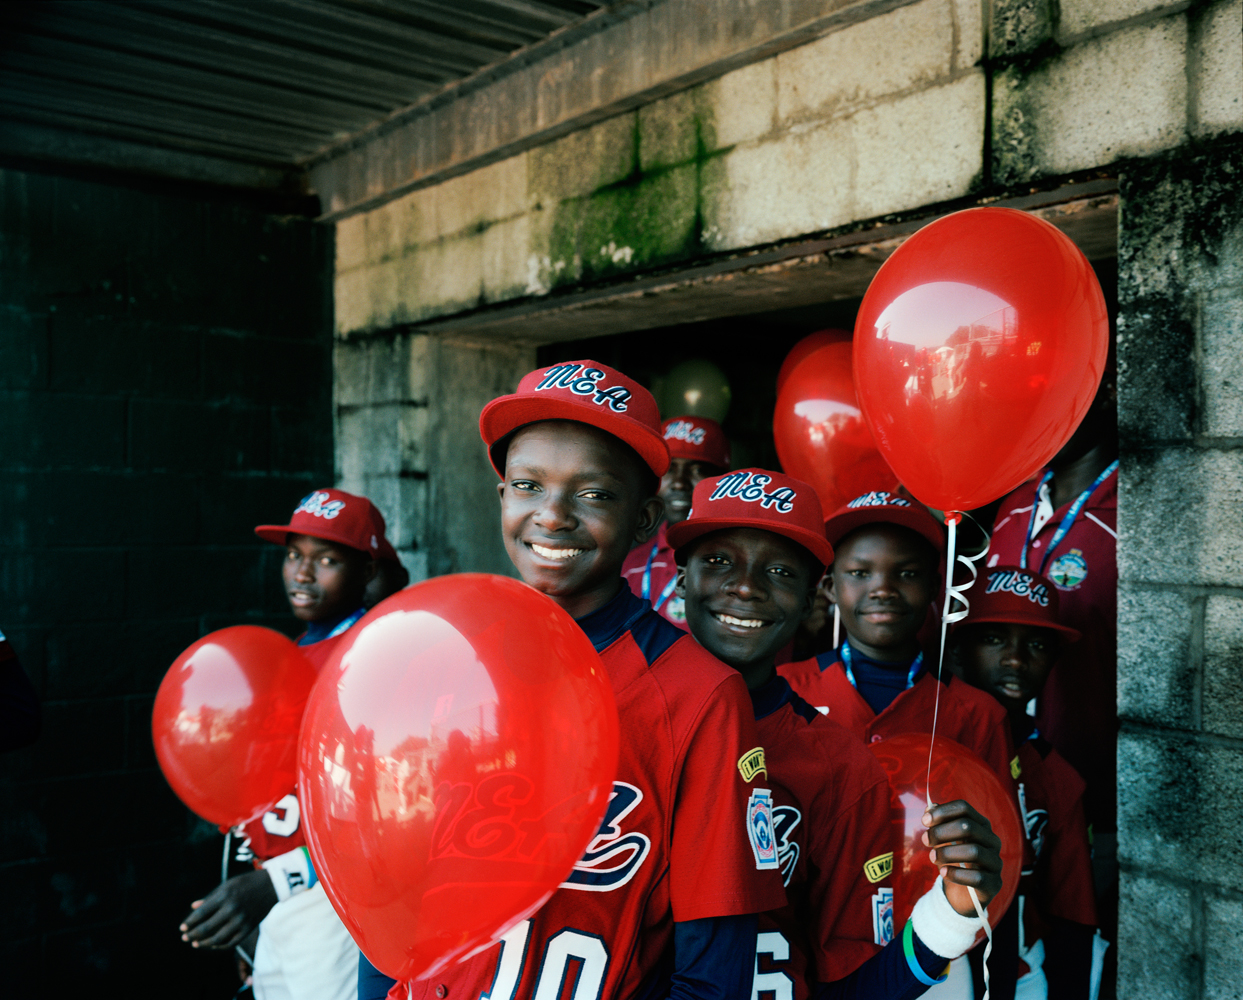 All photos taken on Aug. 16, 2012 at the 66th Little League World Series in Williamsport, Pa.                                The Lugazi Little League team from Lugazi, Uganda celebrate during the opening ceremony.